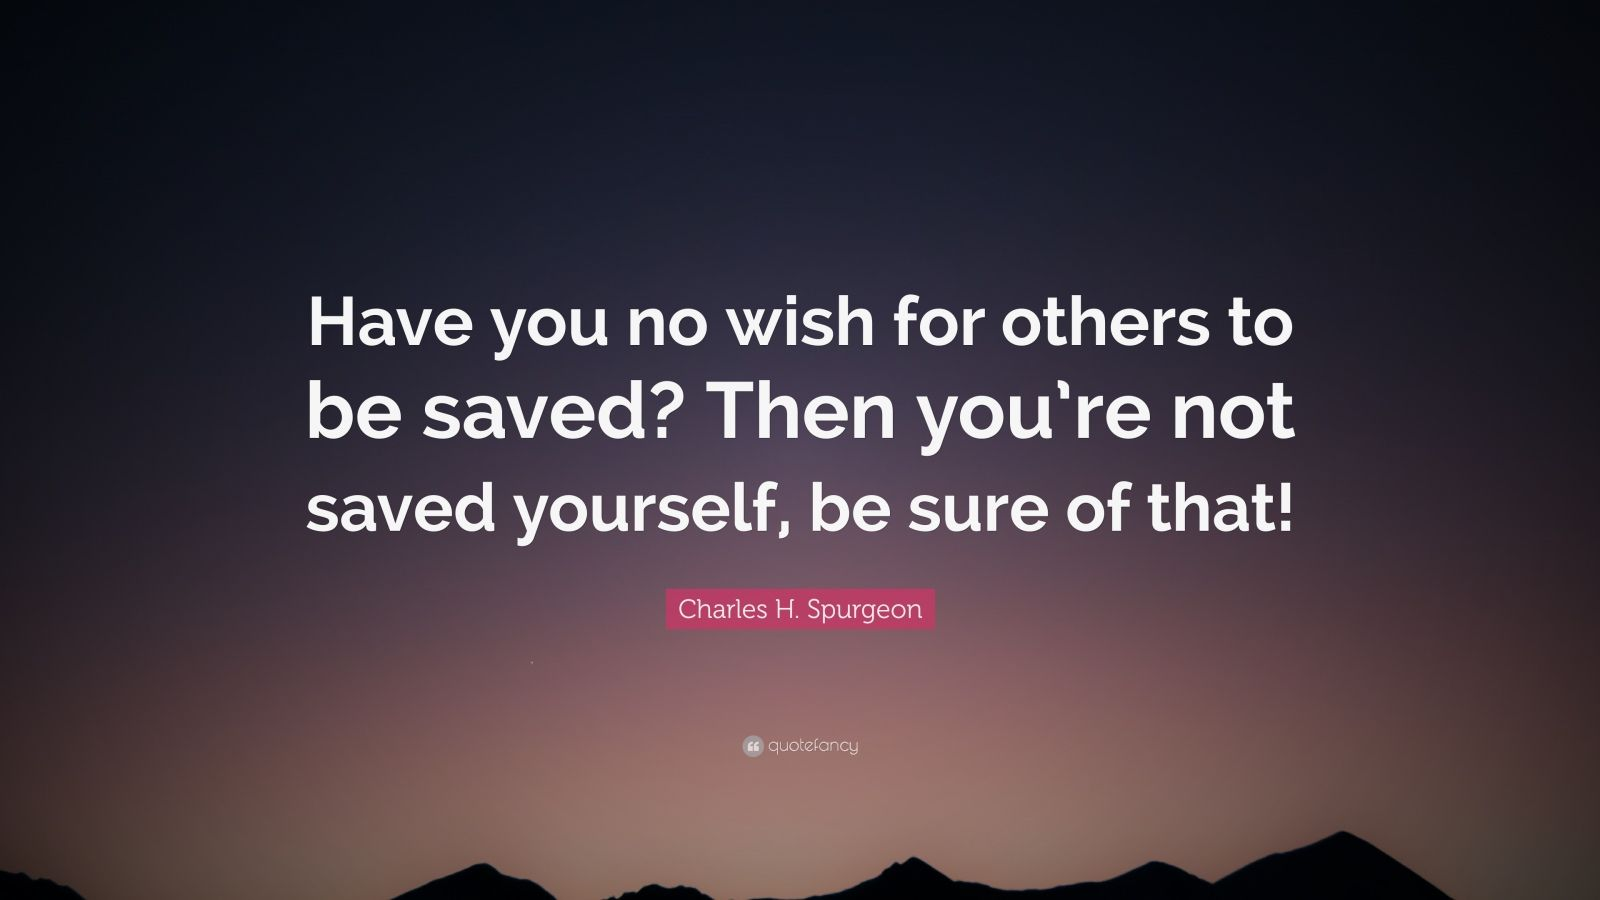 """Charles H. Spurgeon Quote: """"Have you no wish for others to be saved? Then you're not saved yourself, be sure of that!"""""""